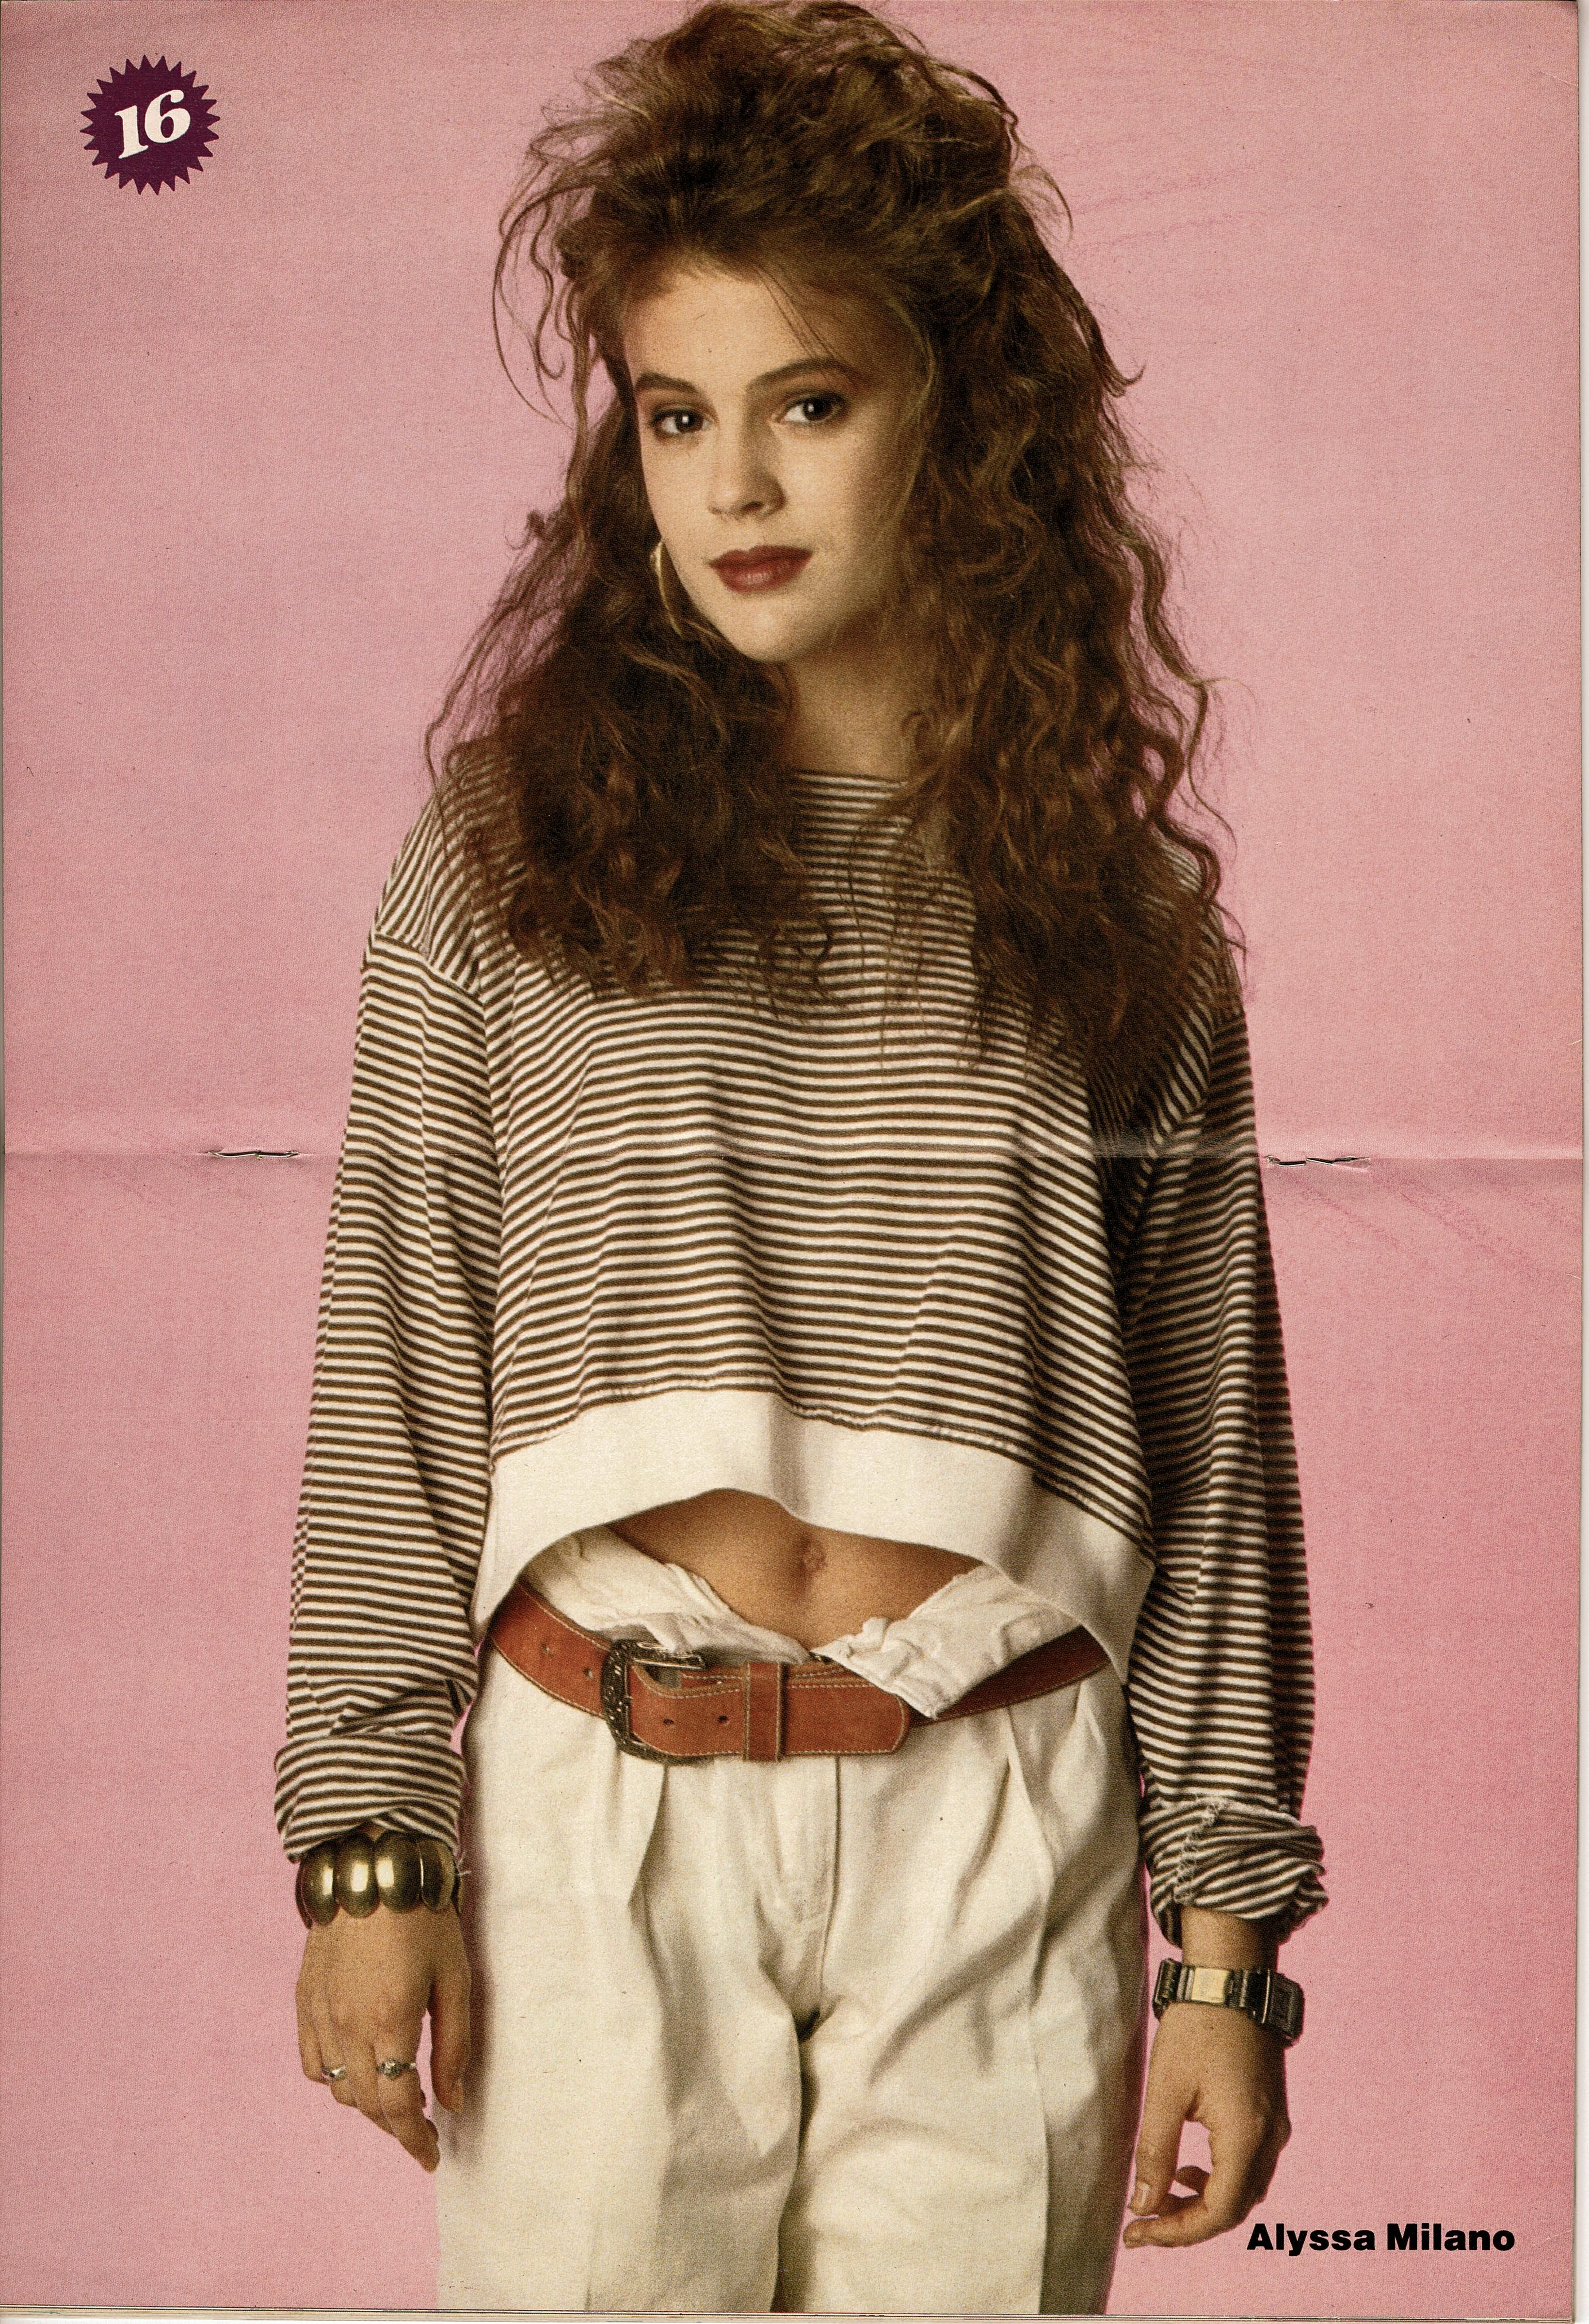 Alyssa Milano Looking Chic In A Centerfold Pinup From The May 1989